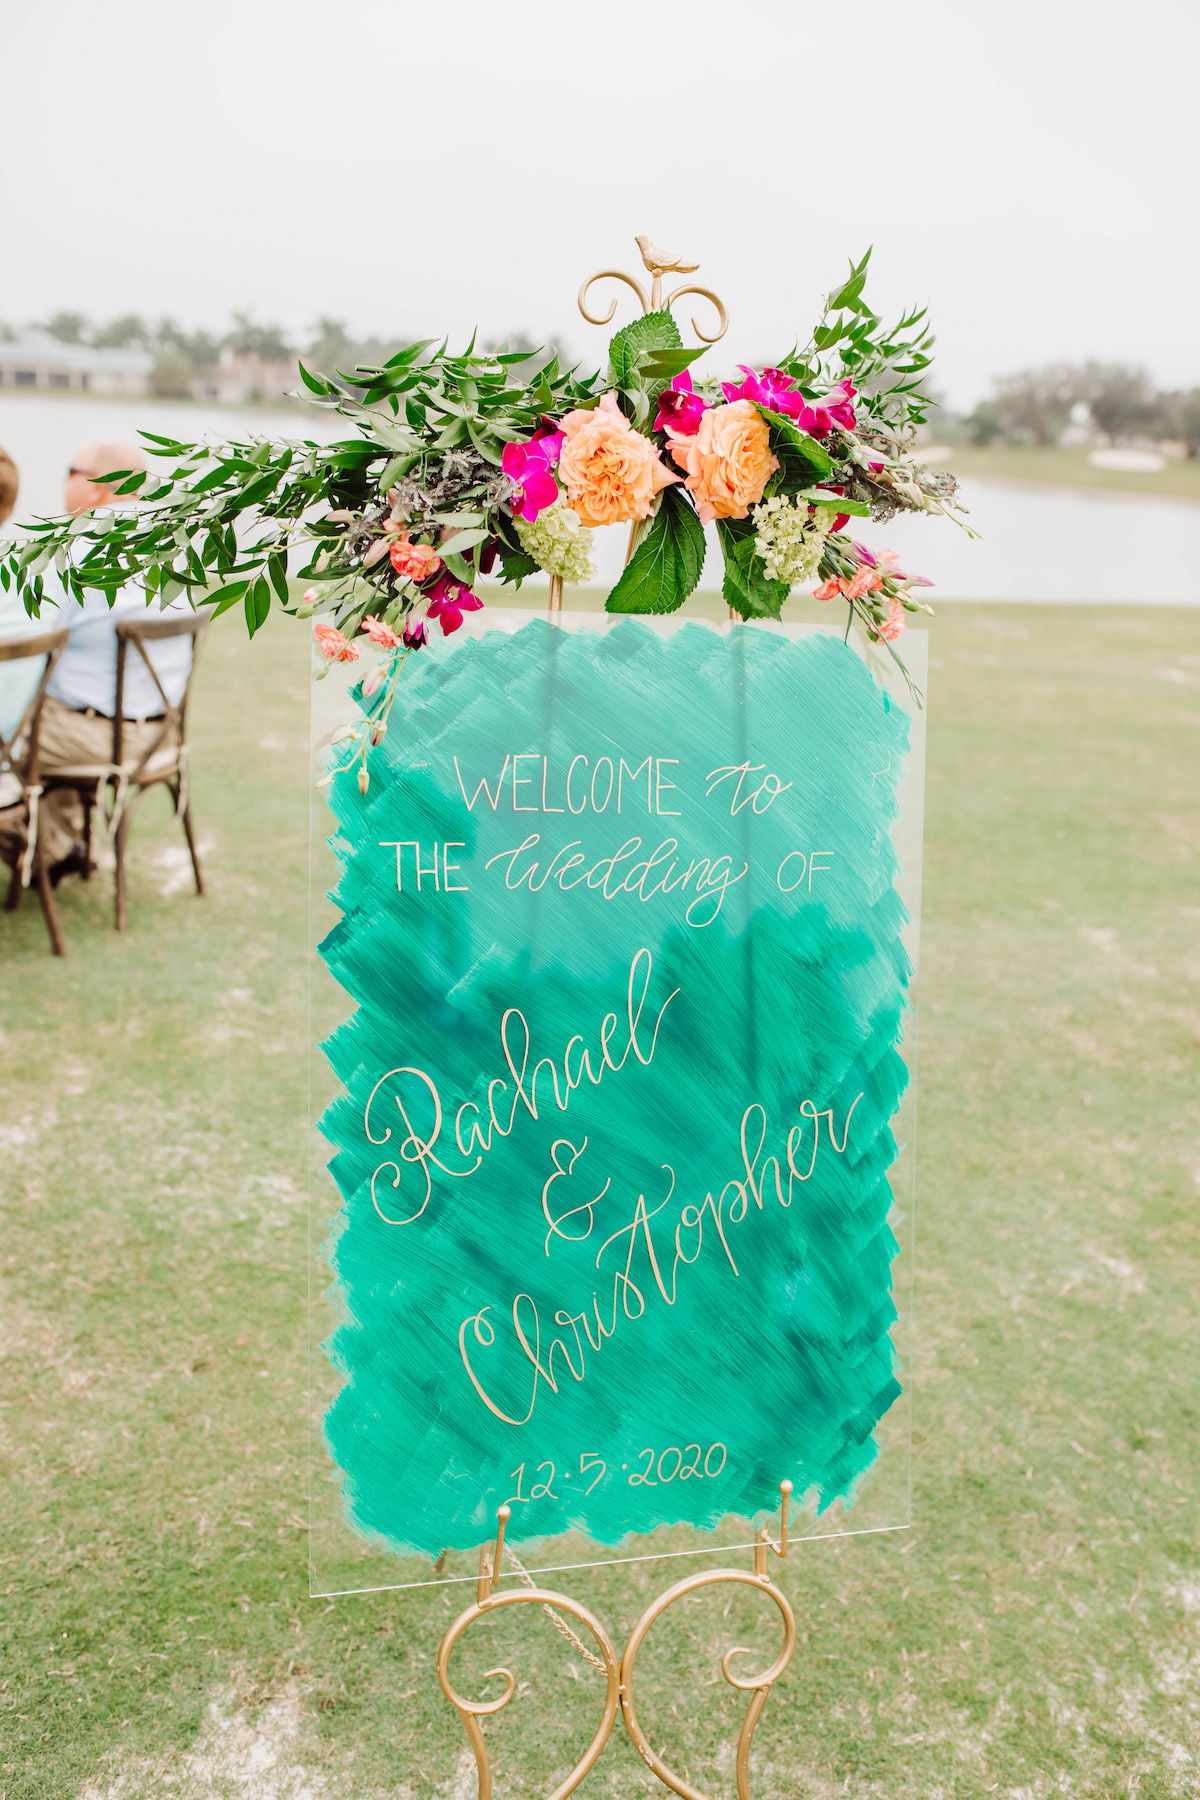 Wedding Ceremony Sign - Bohemian Road Photography